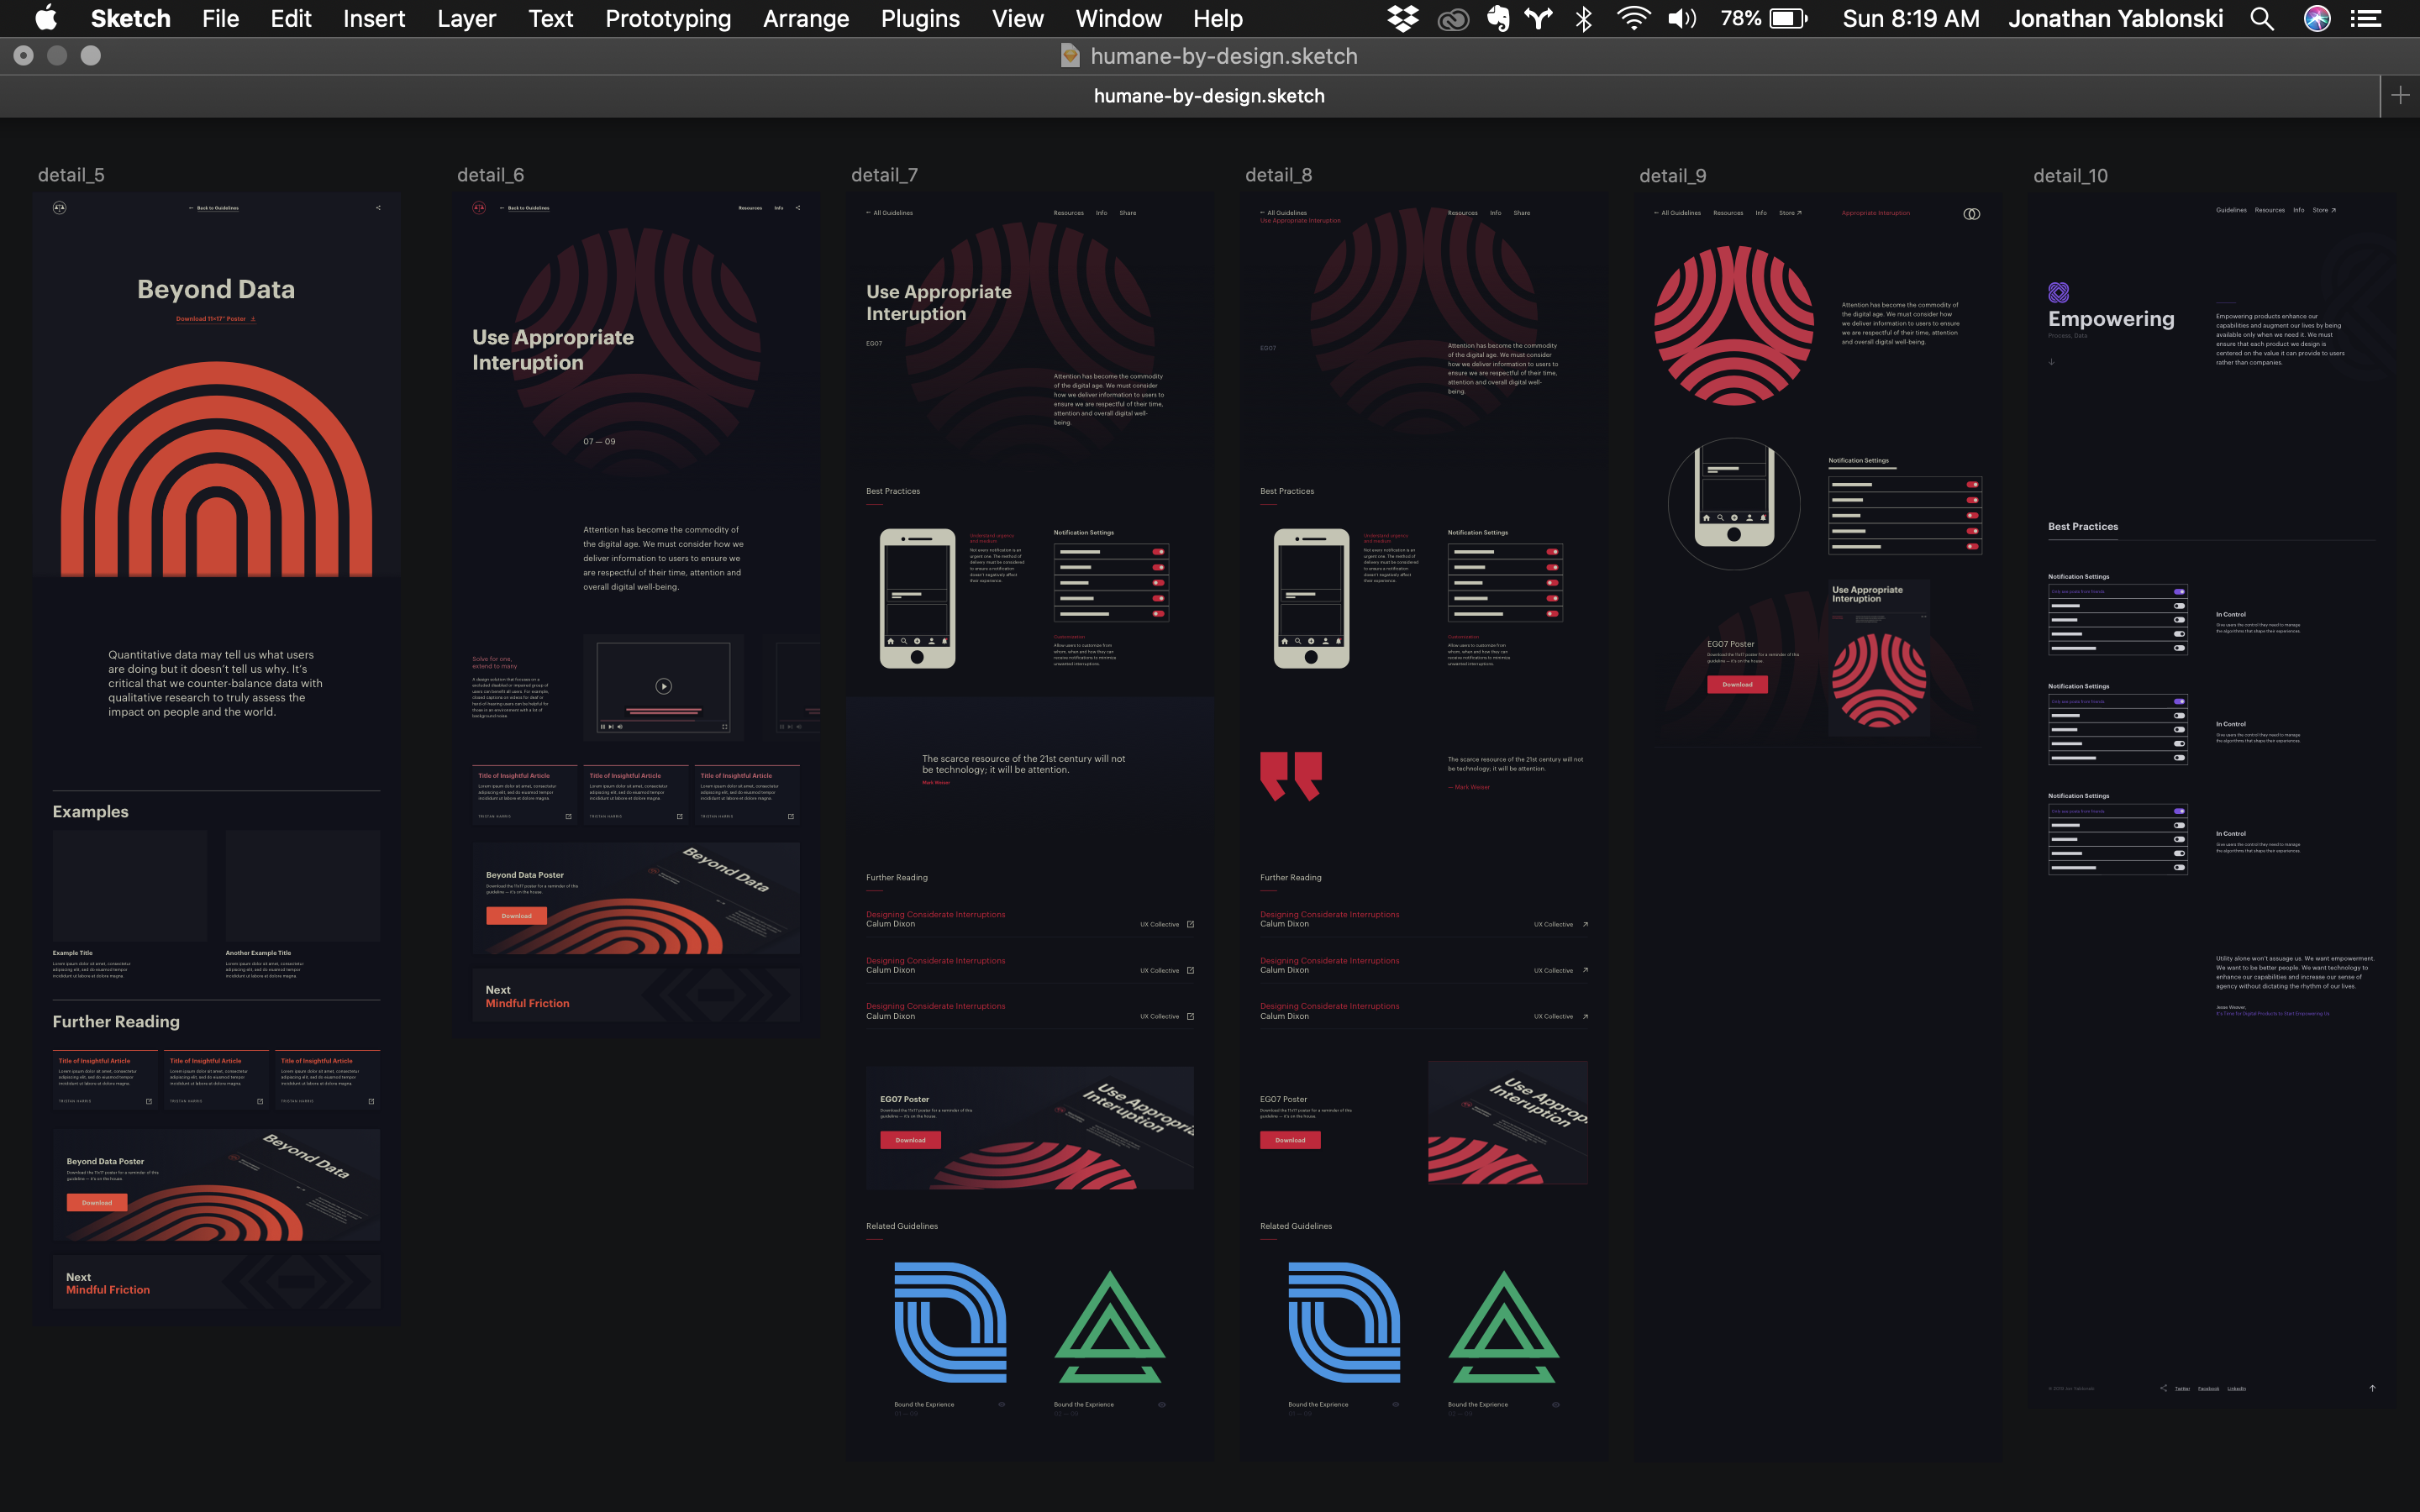 A screenshot of the Sketch Mac app with different webpage designs